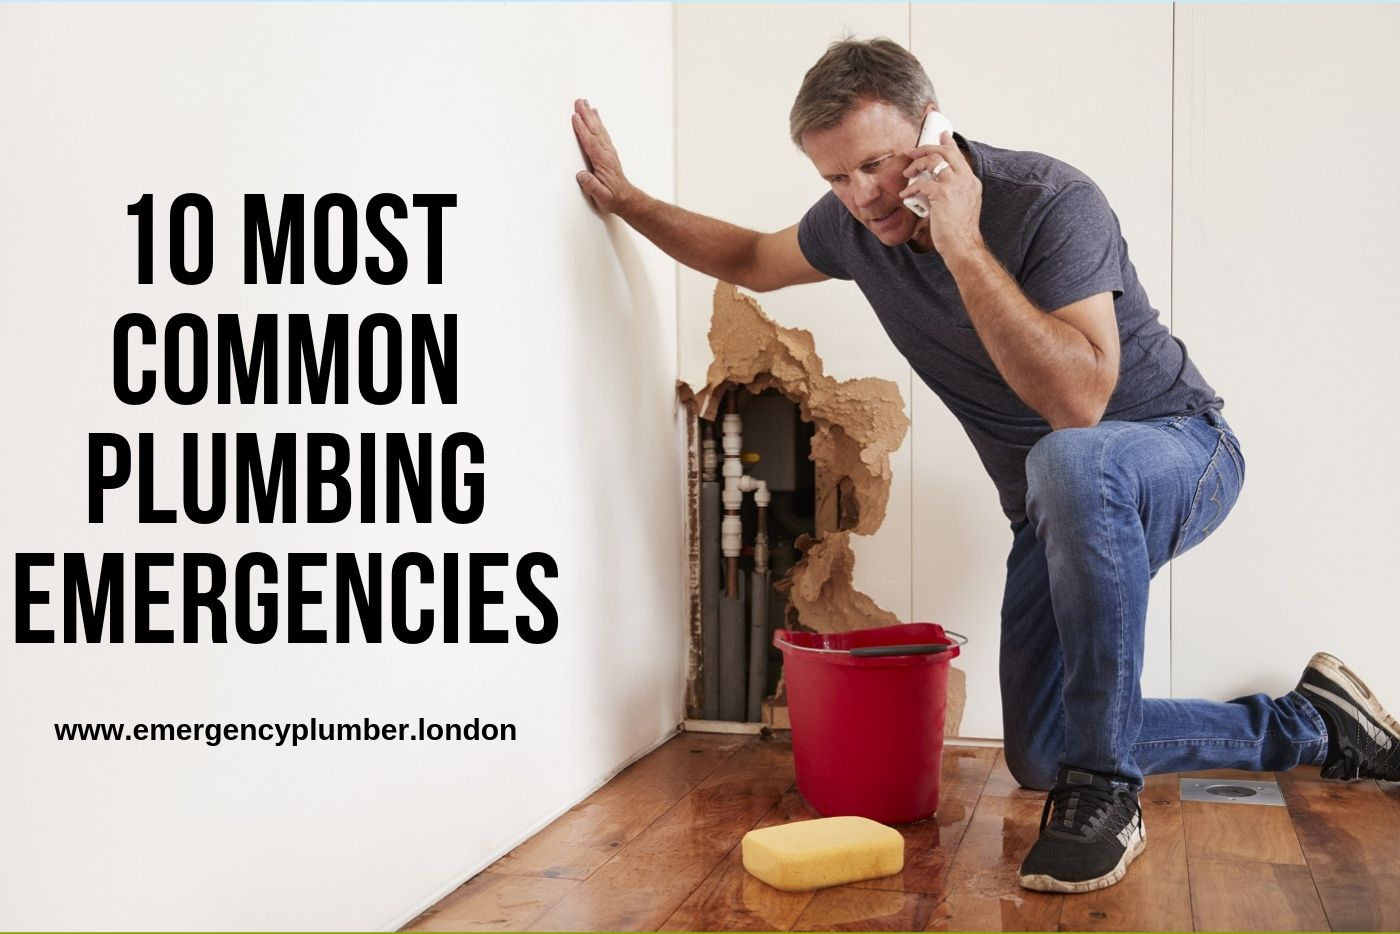 10 Most Common Plumbing Emergencies